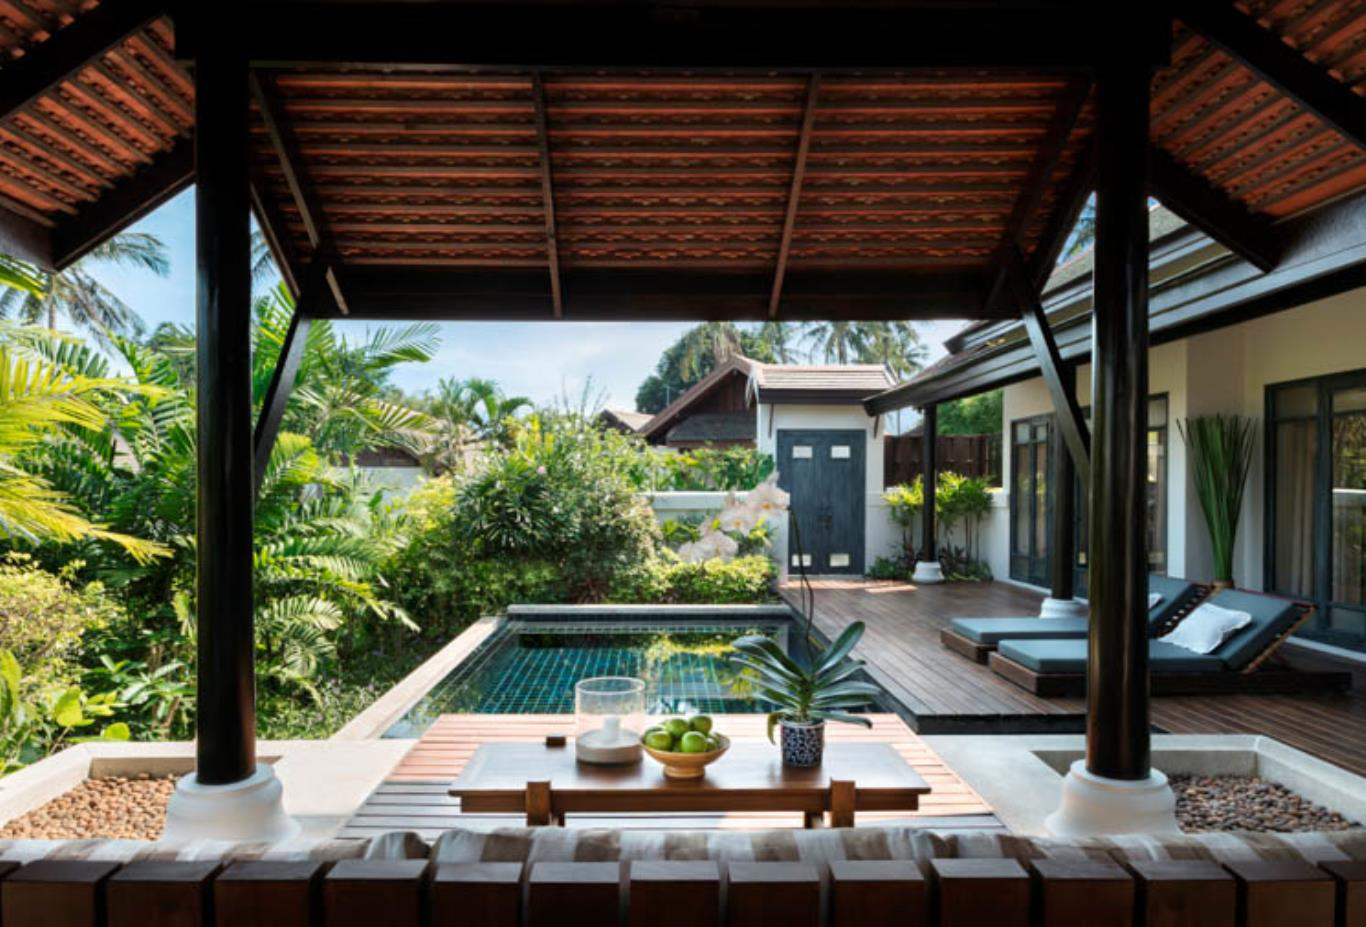 Anantara Pool Villa deck and view